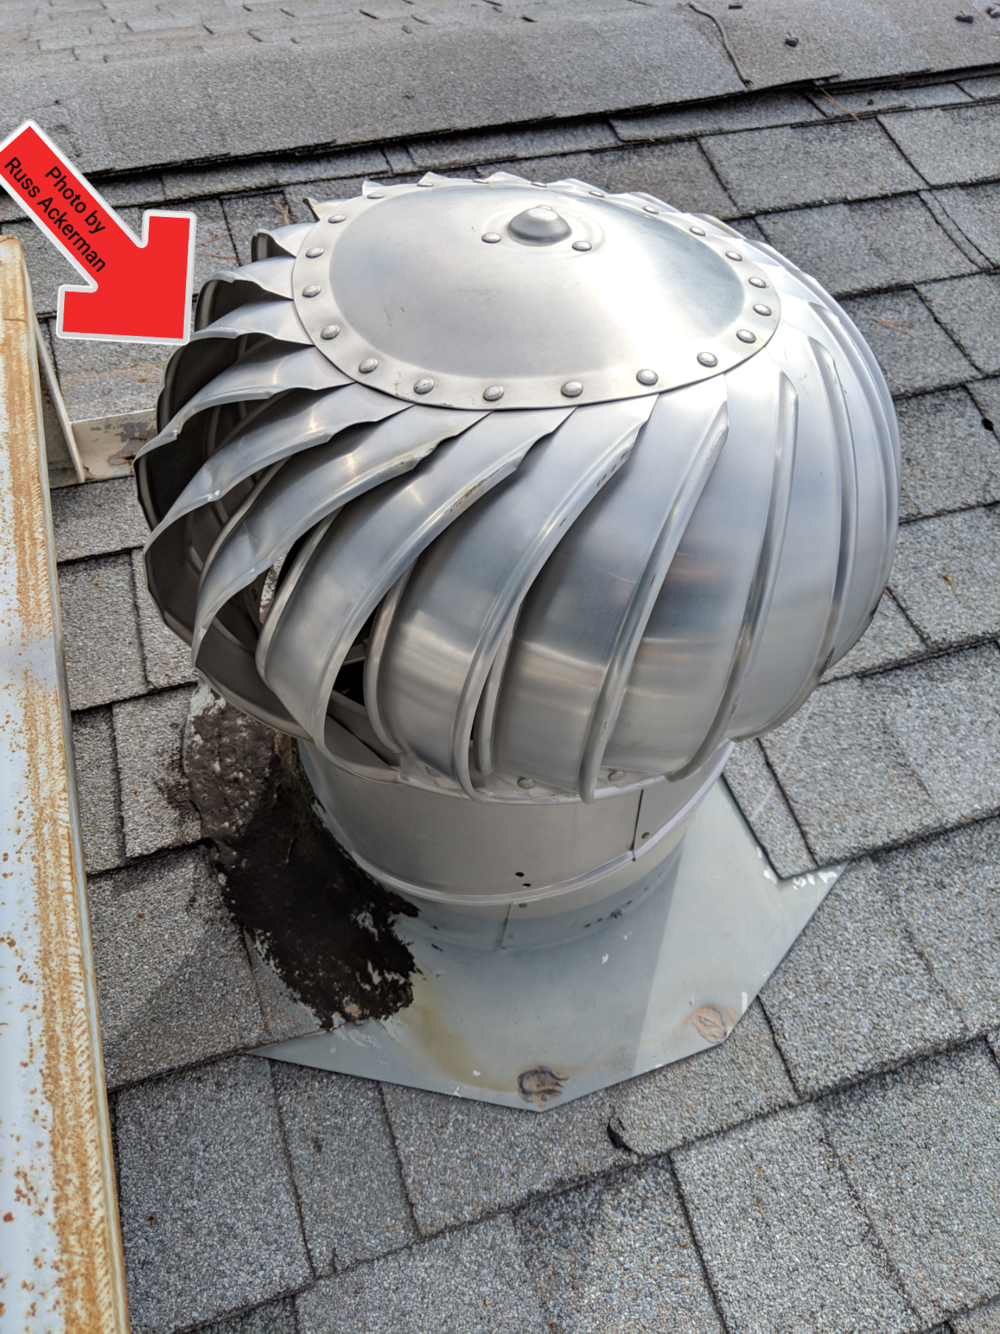 This turbine vent was bent and would not spin freely, replacement is needed to ensure proper ventilation of attic.